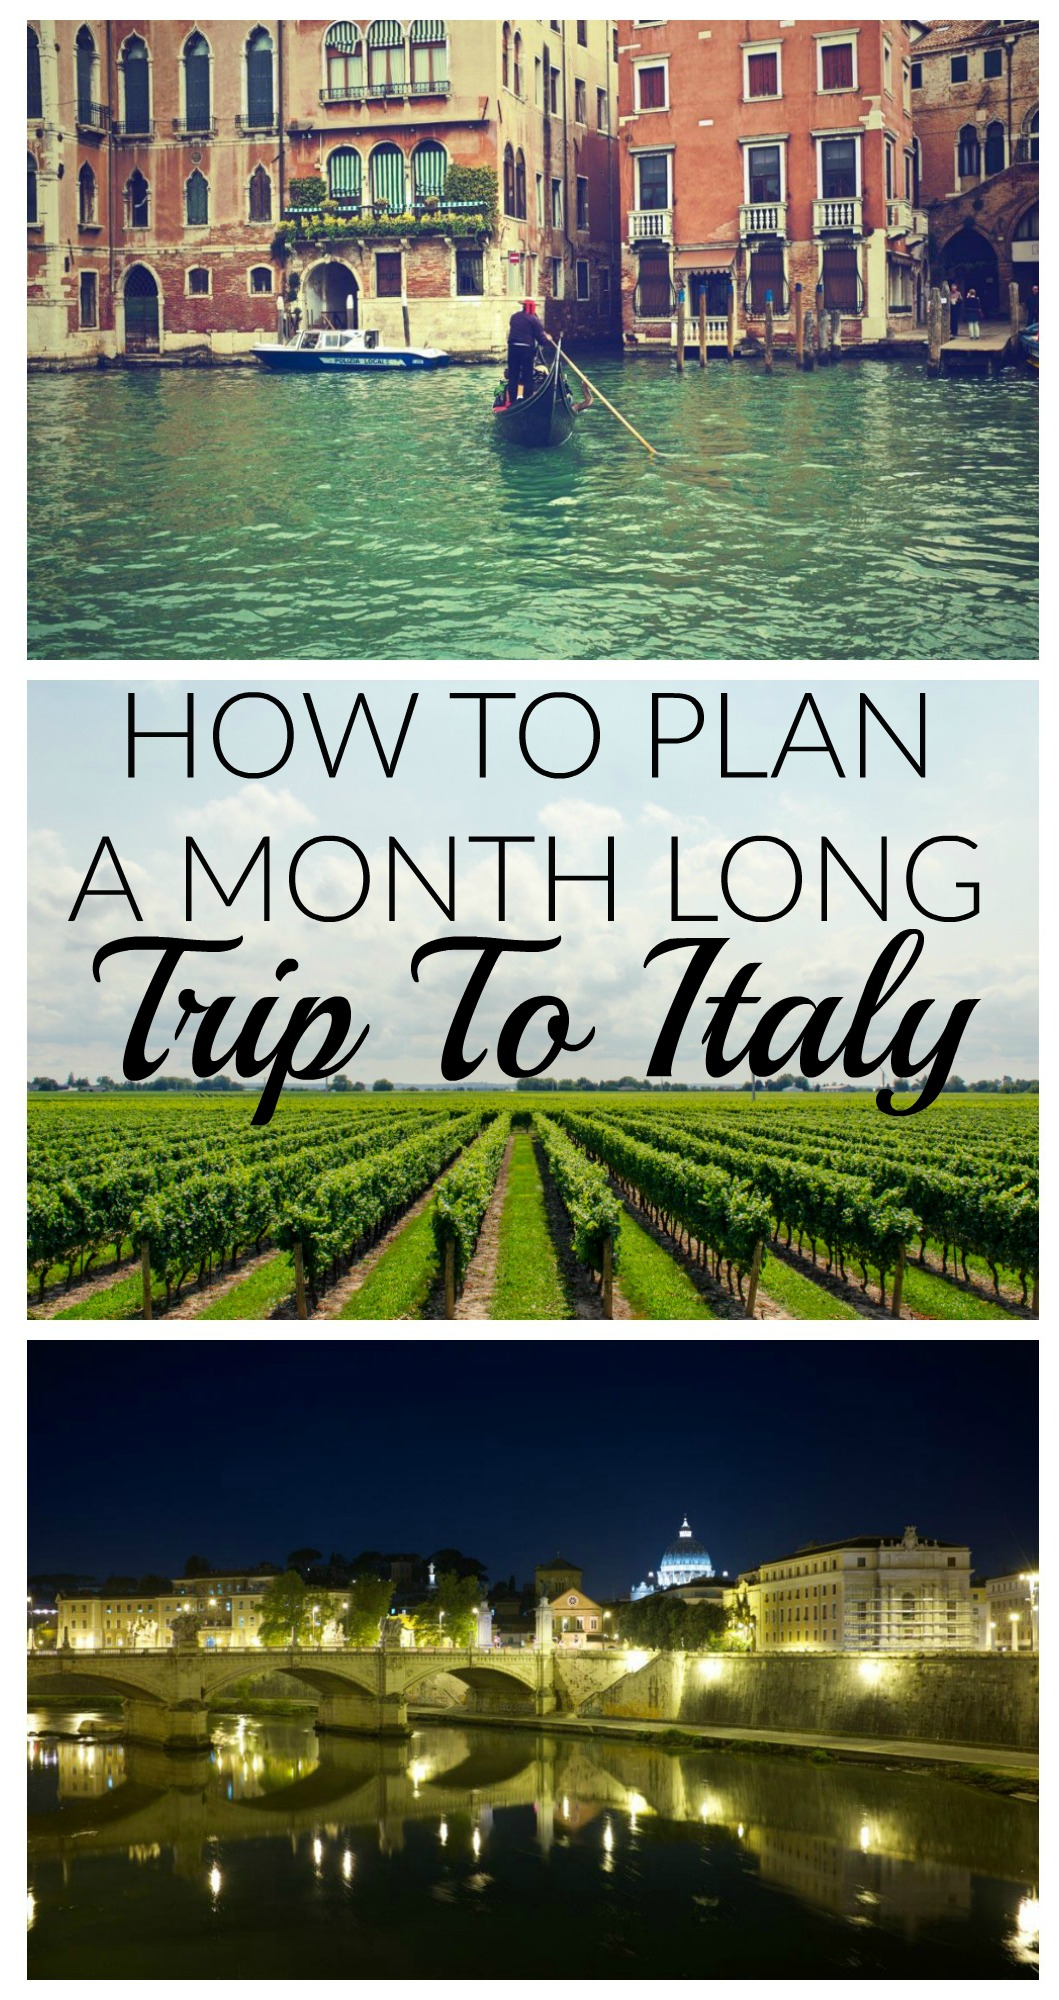 How To Plan A Month Long Italy Trip